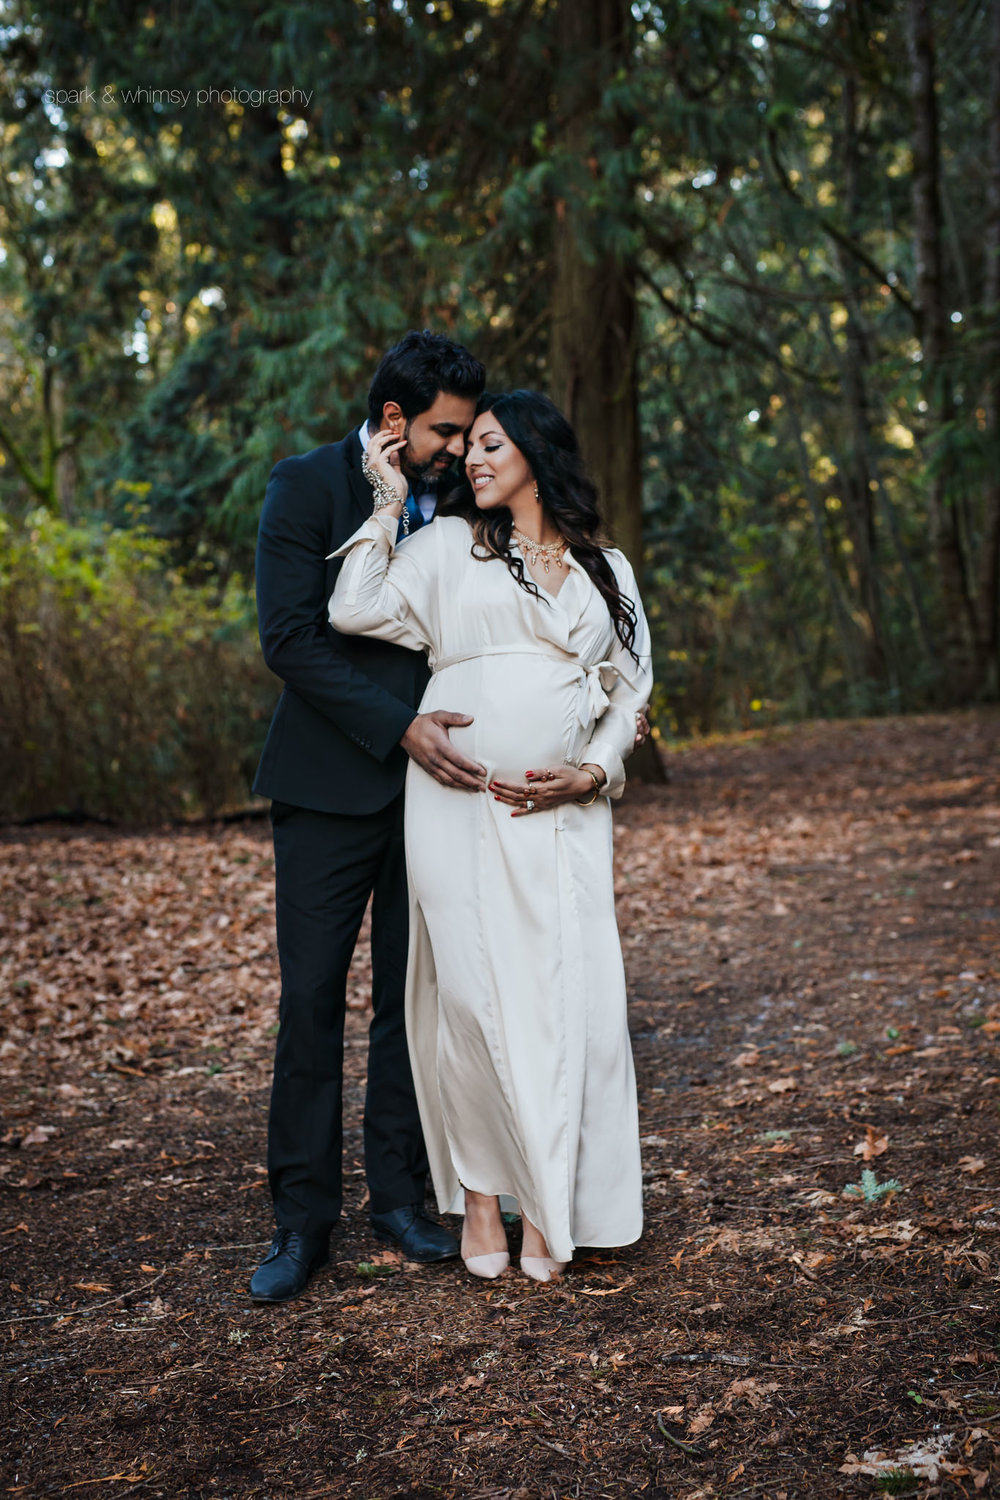 loving embrace | maternity photographer victoria bc